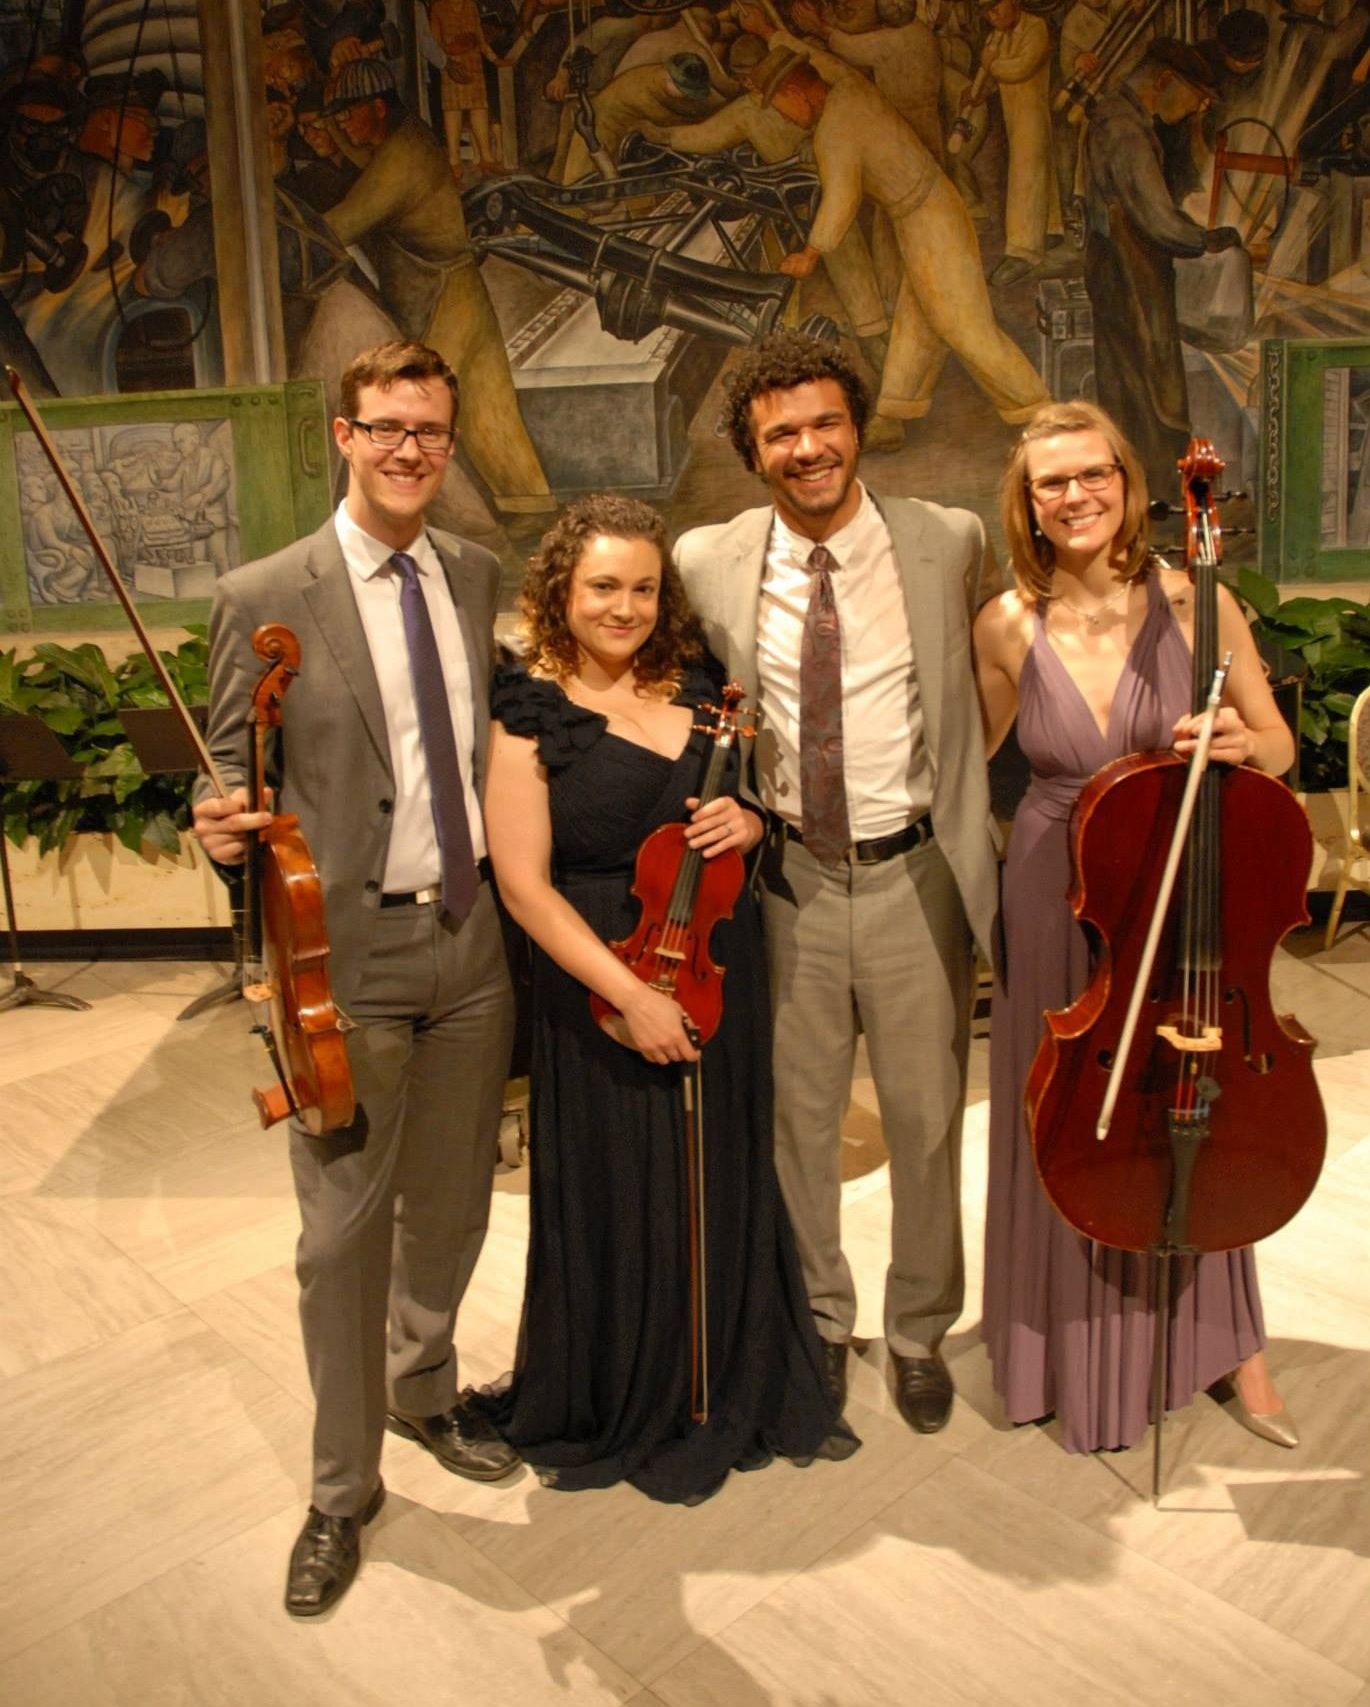 Post-Ligeti Quartet concert with the Ozaki cello and PUBLIQuartet at the Detroit Institute of Arts